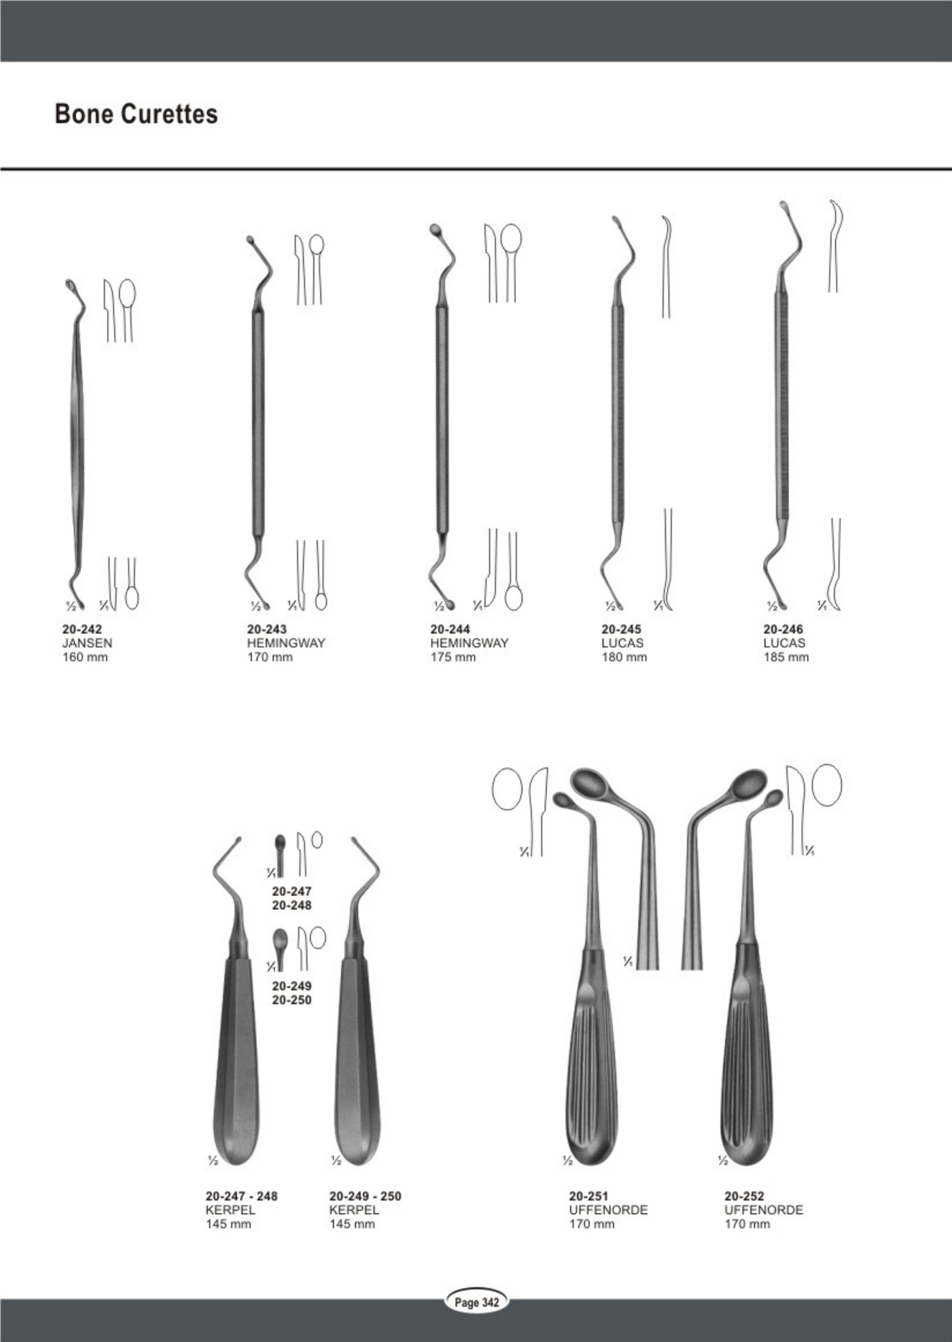 hysterectomy-forceps-and-vaginal-clamps-and-compression